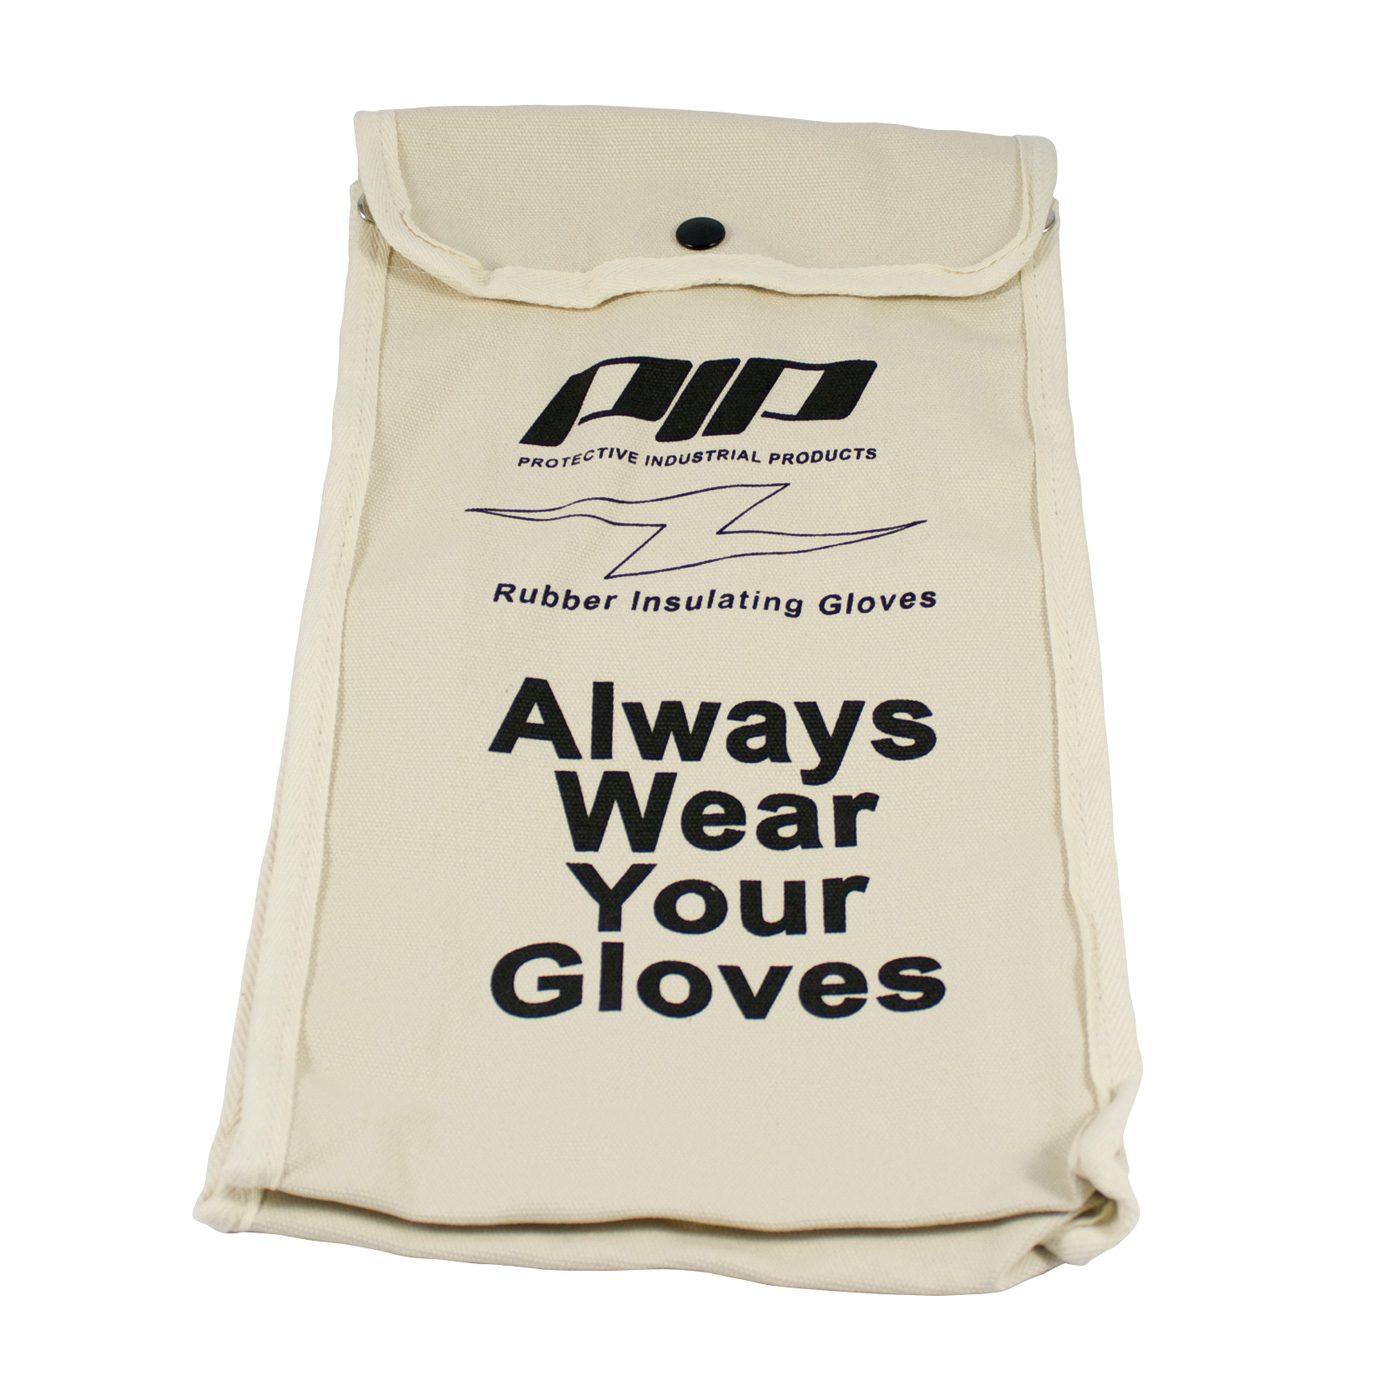 Novax® 148-2142 Protective Bag, Plastic Hook, Snap Closure, For Use With Novax Rubber Insulating Gloves, Nylon, Black with Red/White Lettering